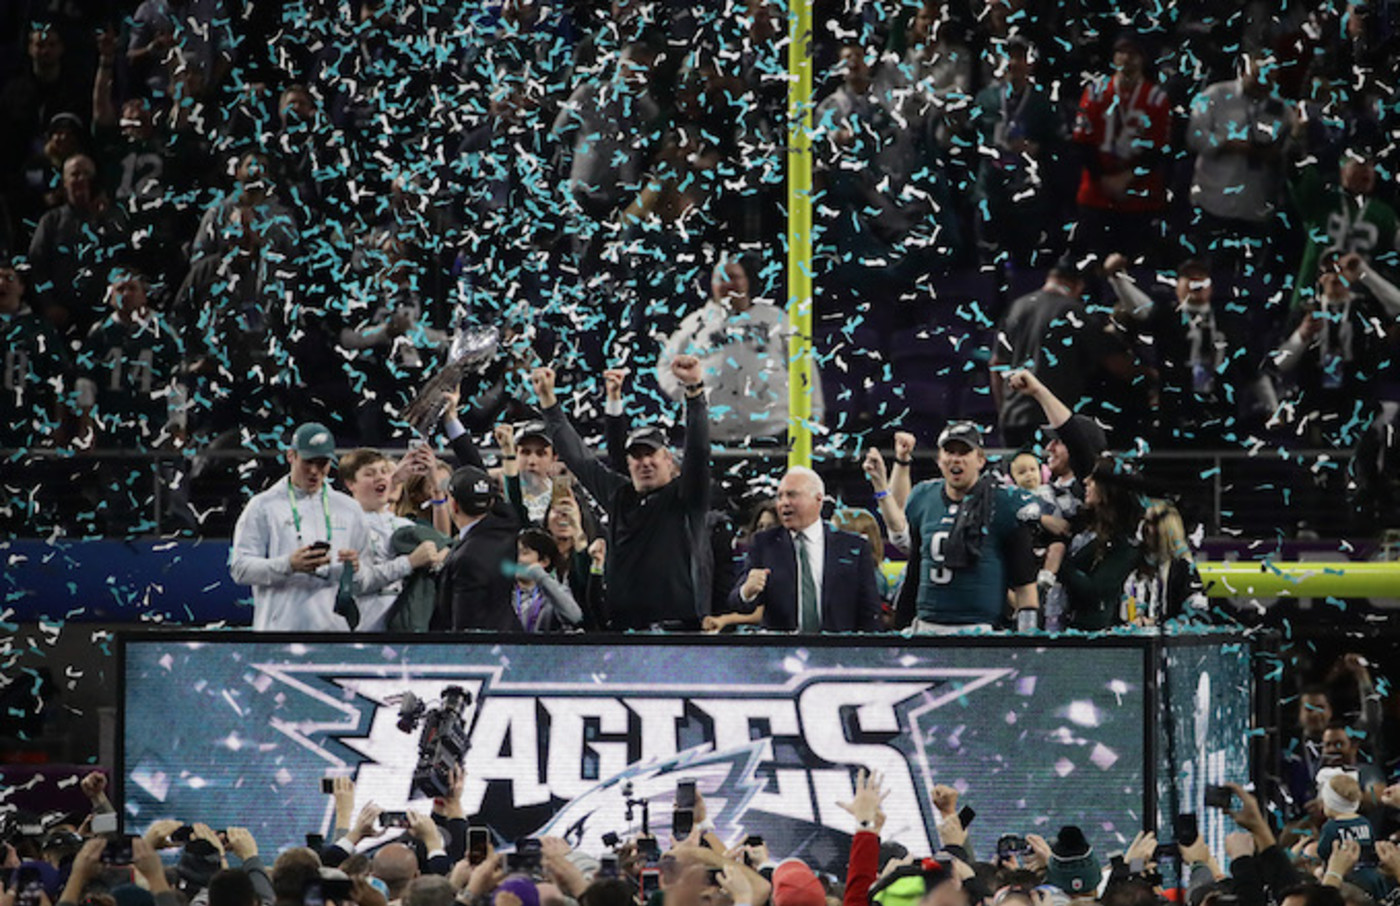 Philadelphia Eagles celebrate with the Vince Lombardi Trophy.